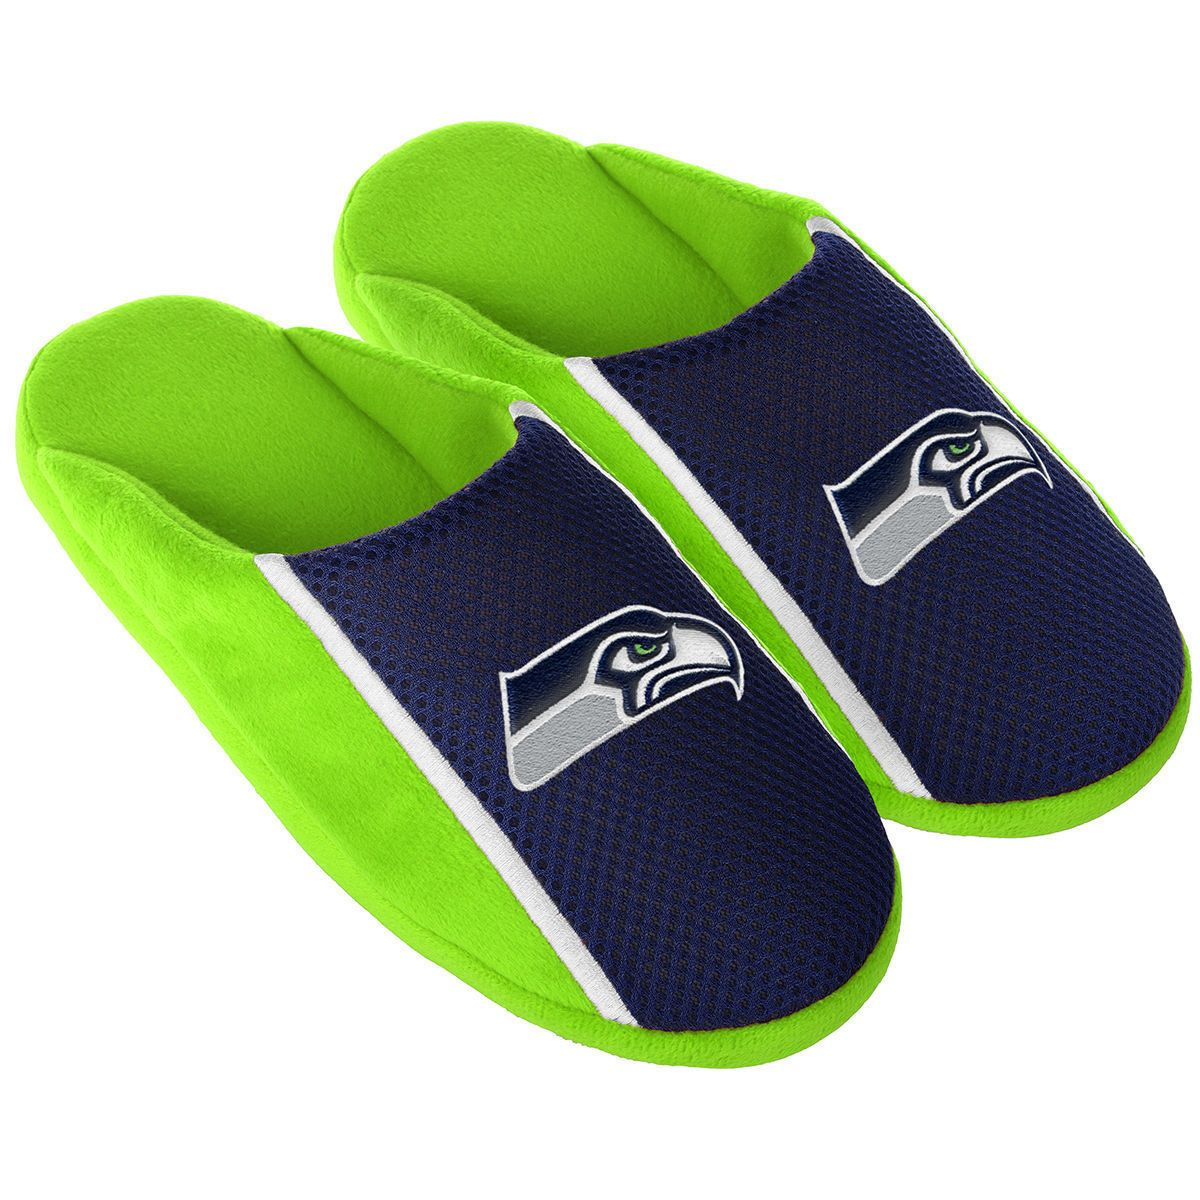 ea10190673ce Slippers 163550  Pair Seattle Seahawks Jersey Slide Slippers - Team Color  House Shoes Jrs16 Style -  BUY IT NOW ONLY   15.25 on  eBay  slippers   seattle ...